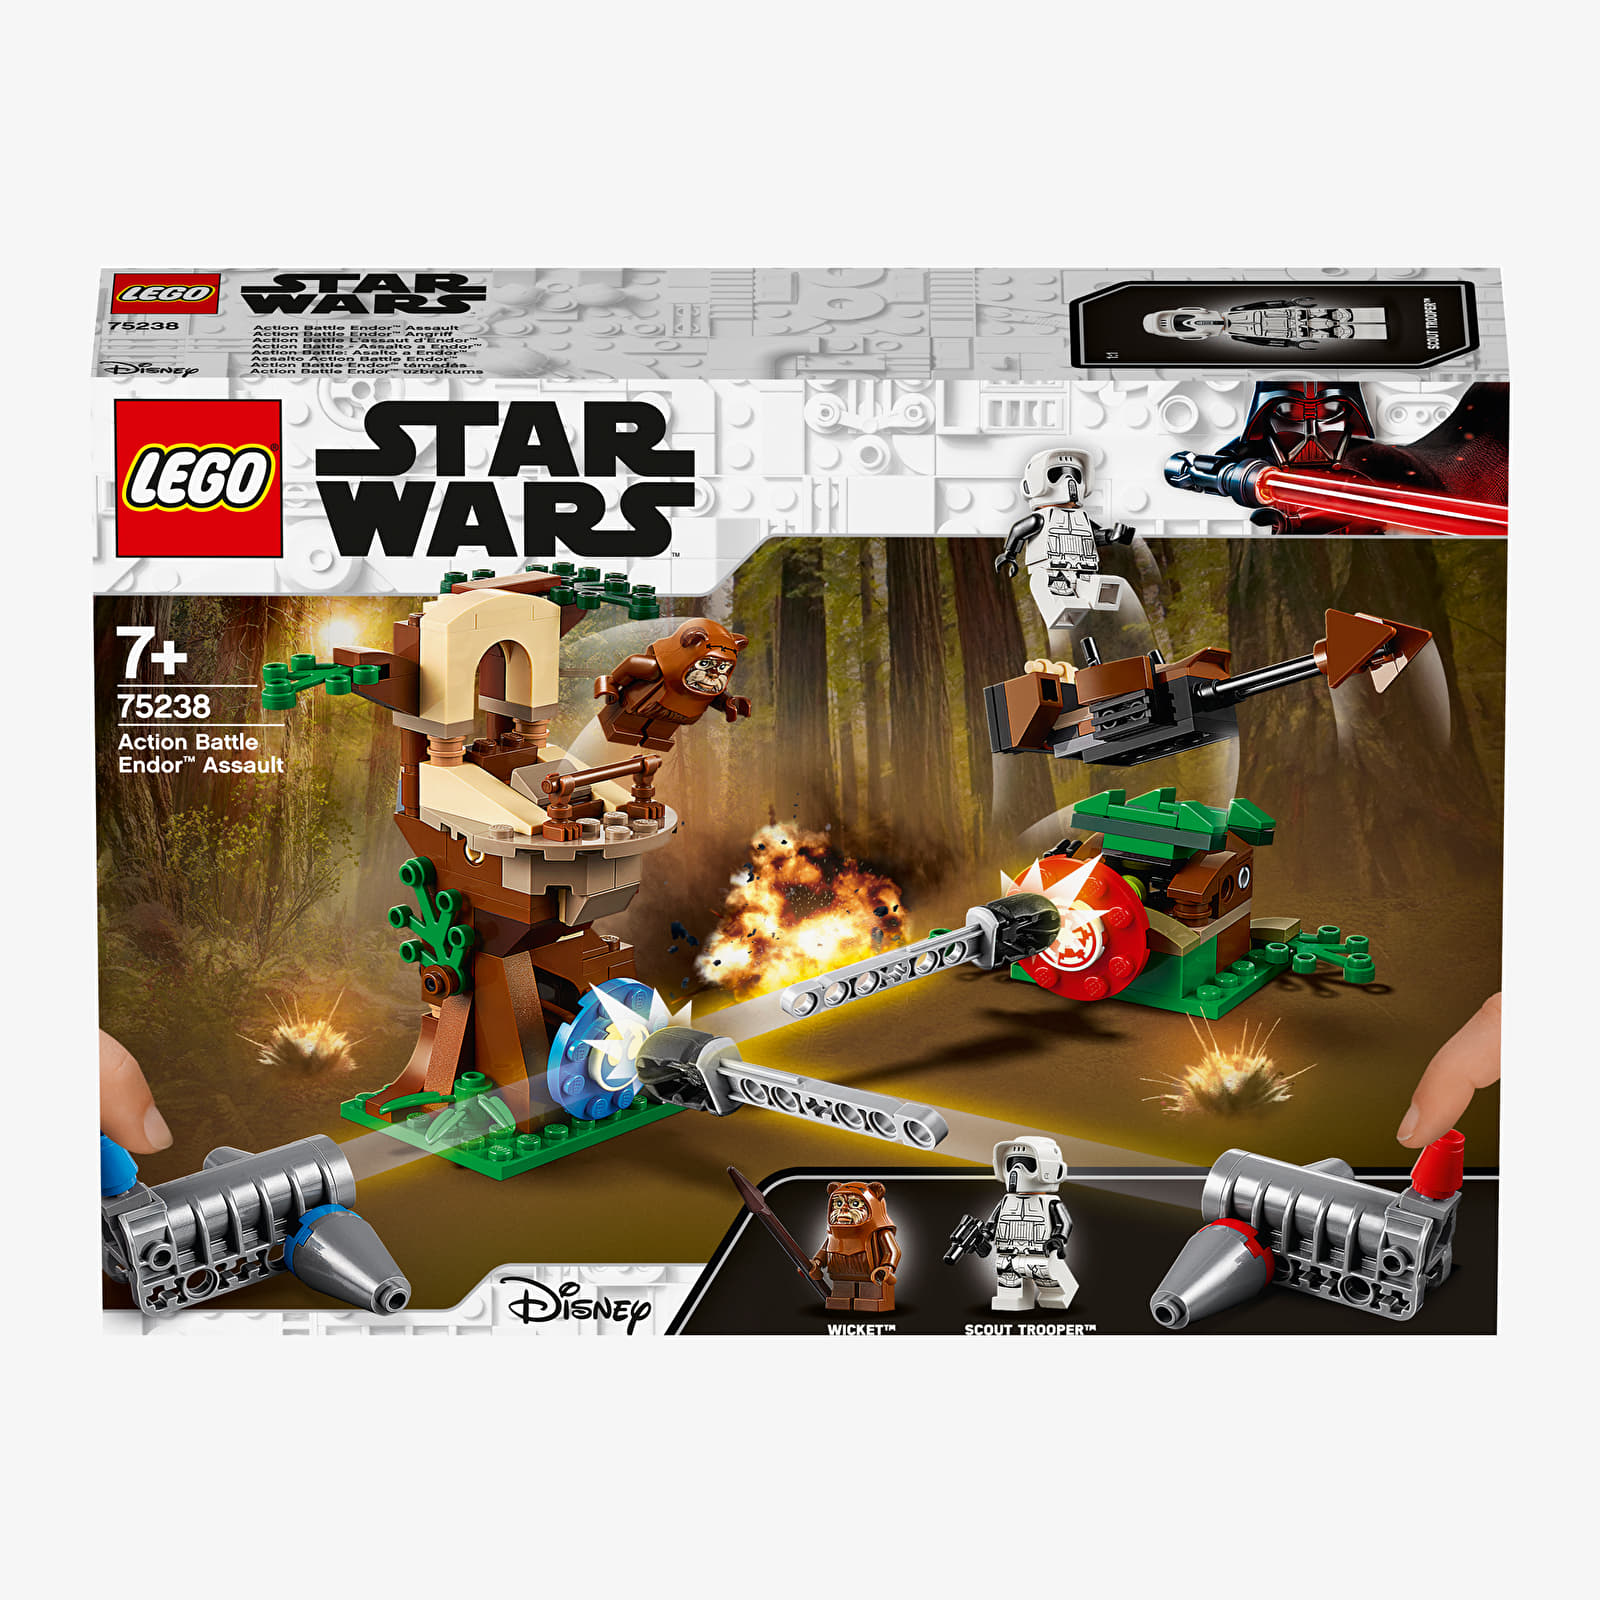 LEGO Star Wars Action Battle Endor Assault